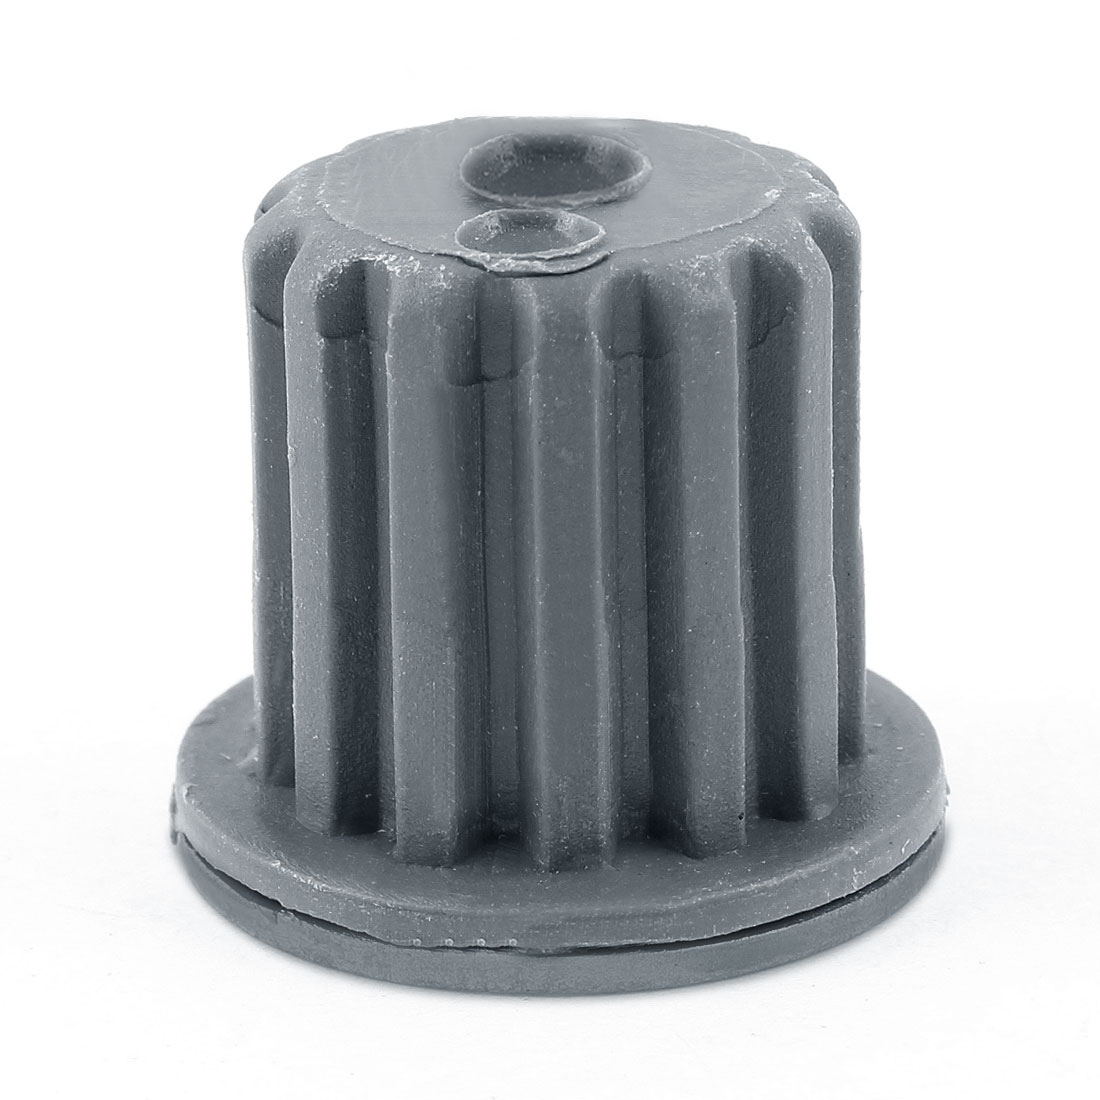 "1/4"" Dia Centering Hole 11 Teeth Metal Pulsator Core for Washing Machine"